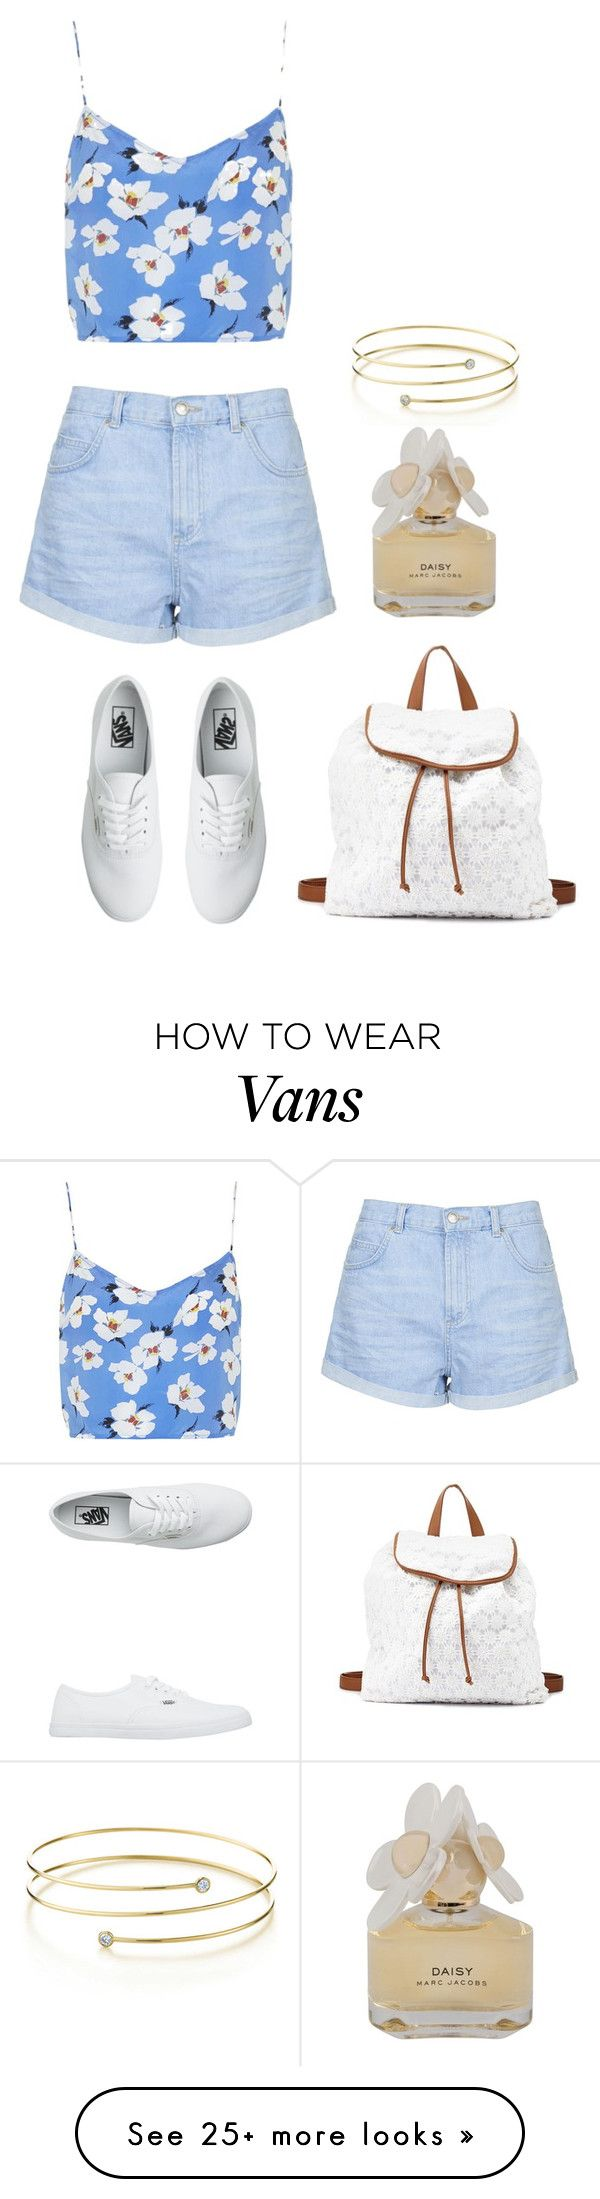 """""""Nice"""" by honeyat on Polyvore featuring moda, Charlotte Russe, Boutique, Topshop, Vans, Elsa Peretti e Marc by Marc Jacobs"""